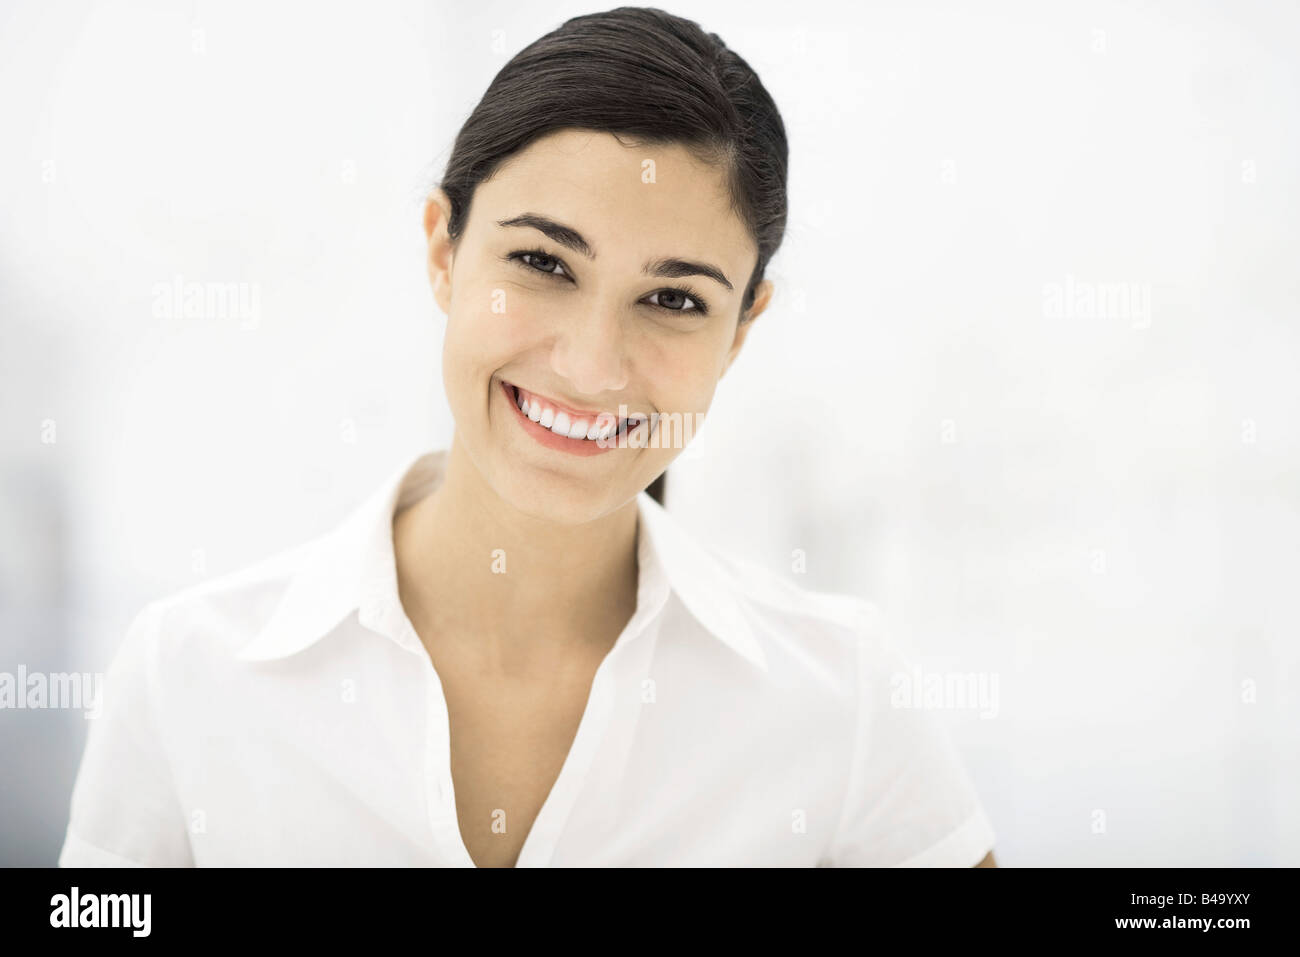 Woman smiling at camera, portrait - Stock Image